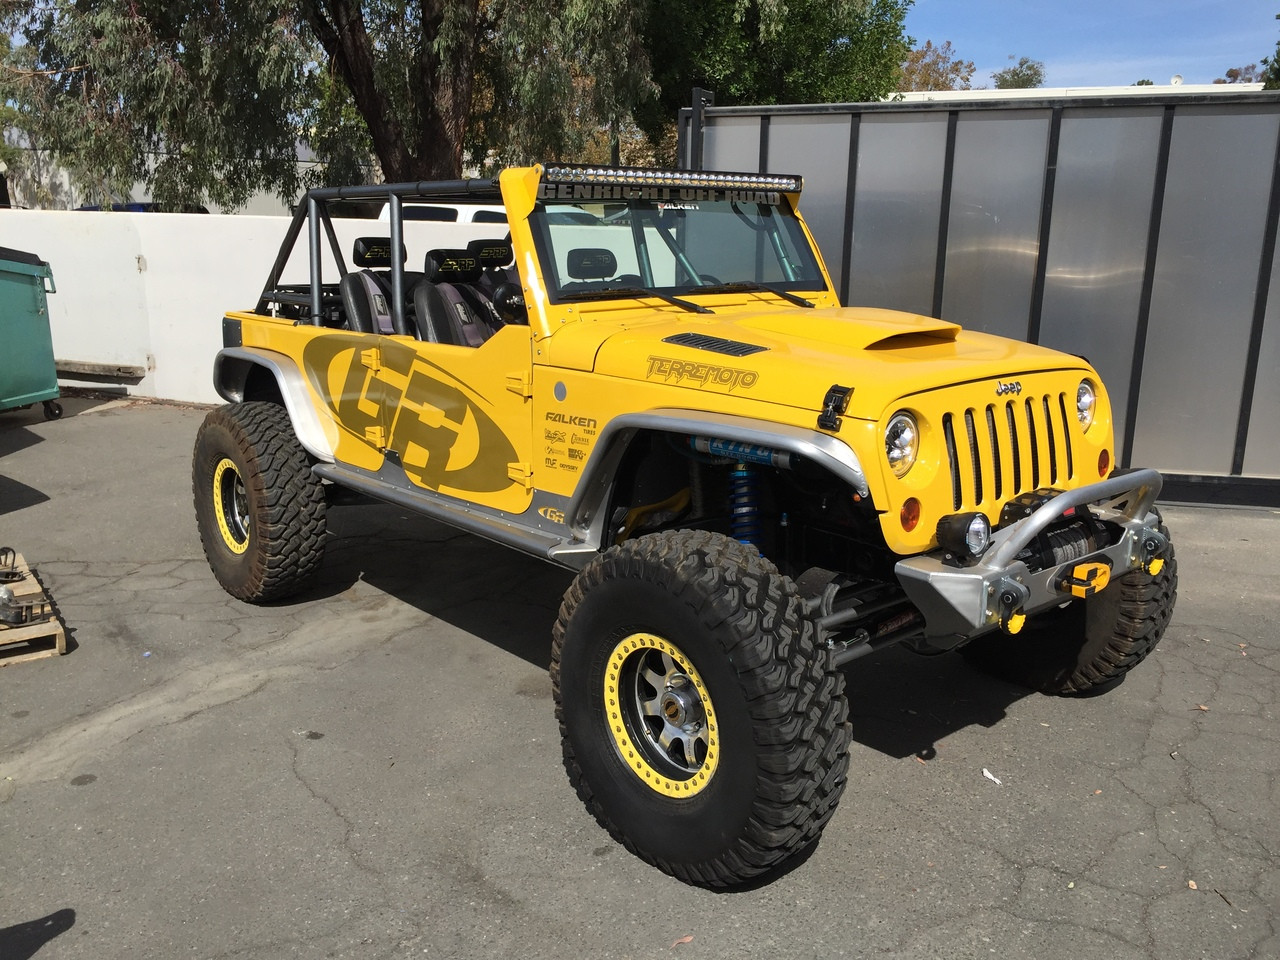 The VisionX LED light bar mounts cleanly to the top of the Jeep JK windshield.